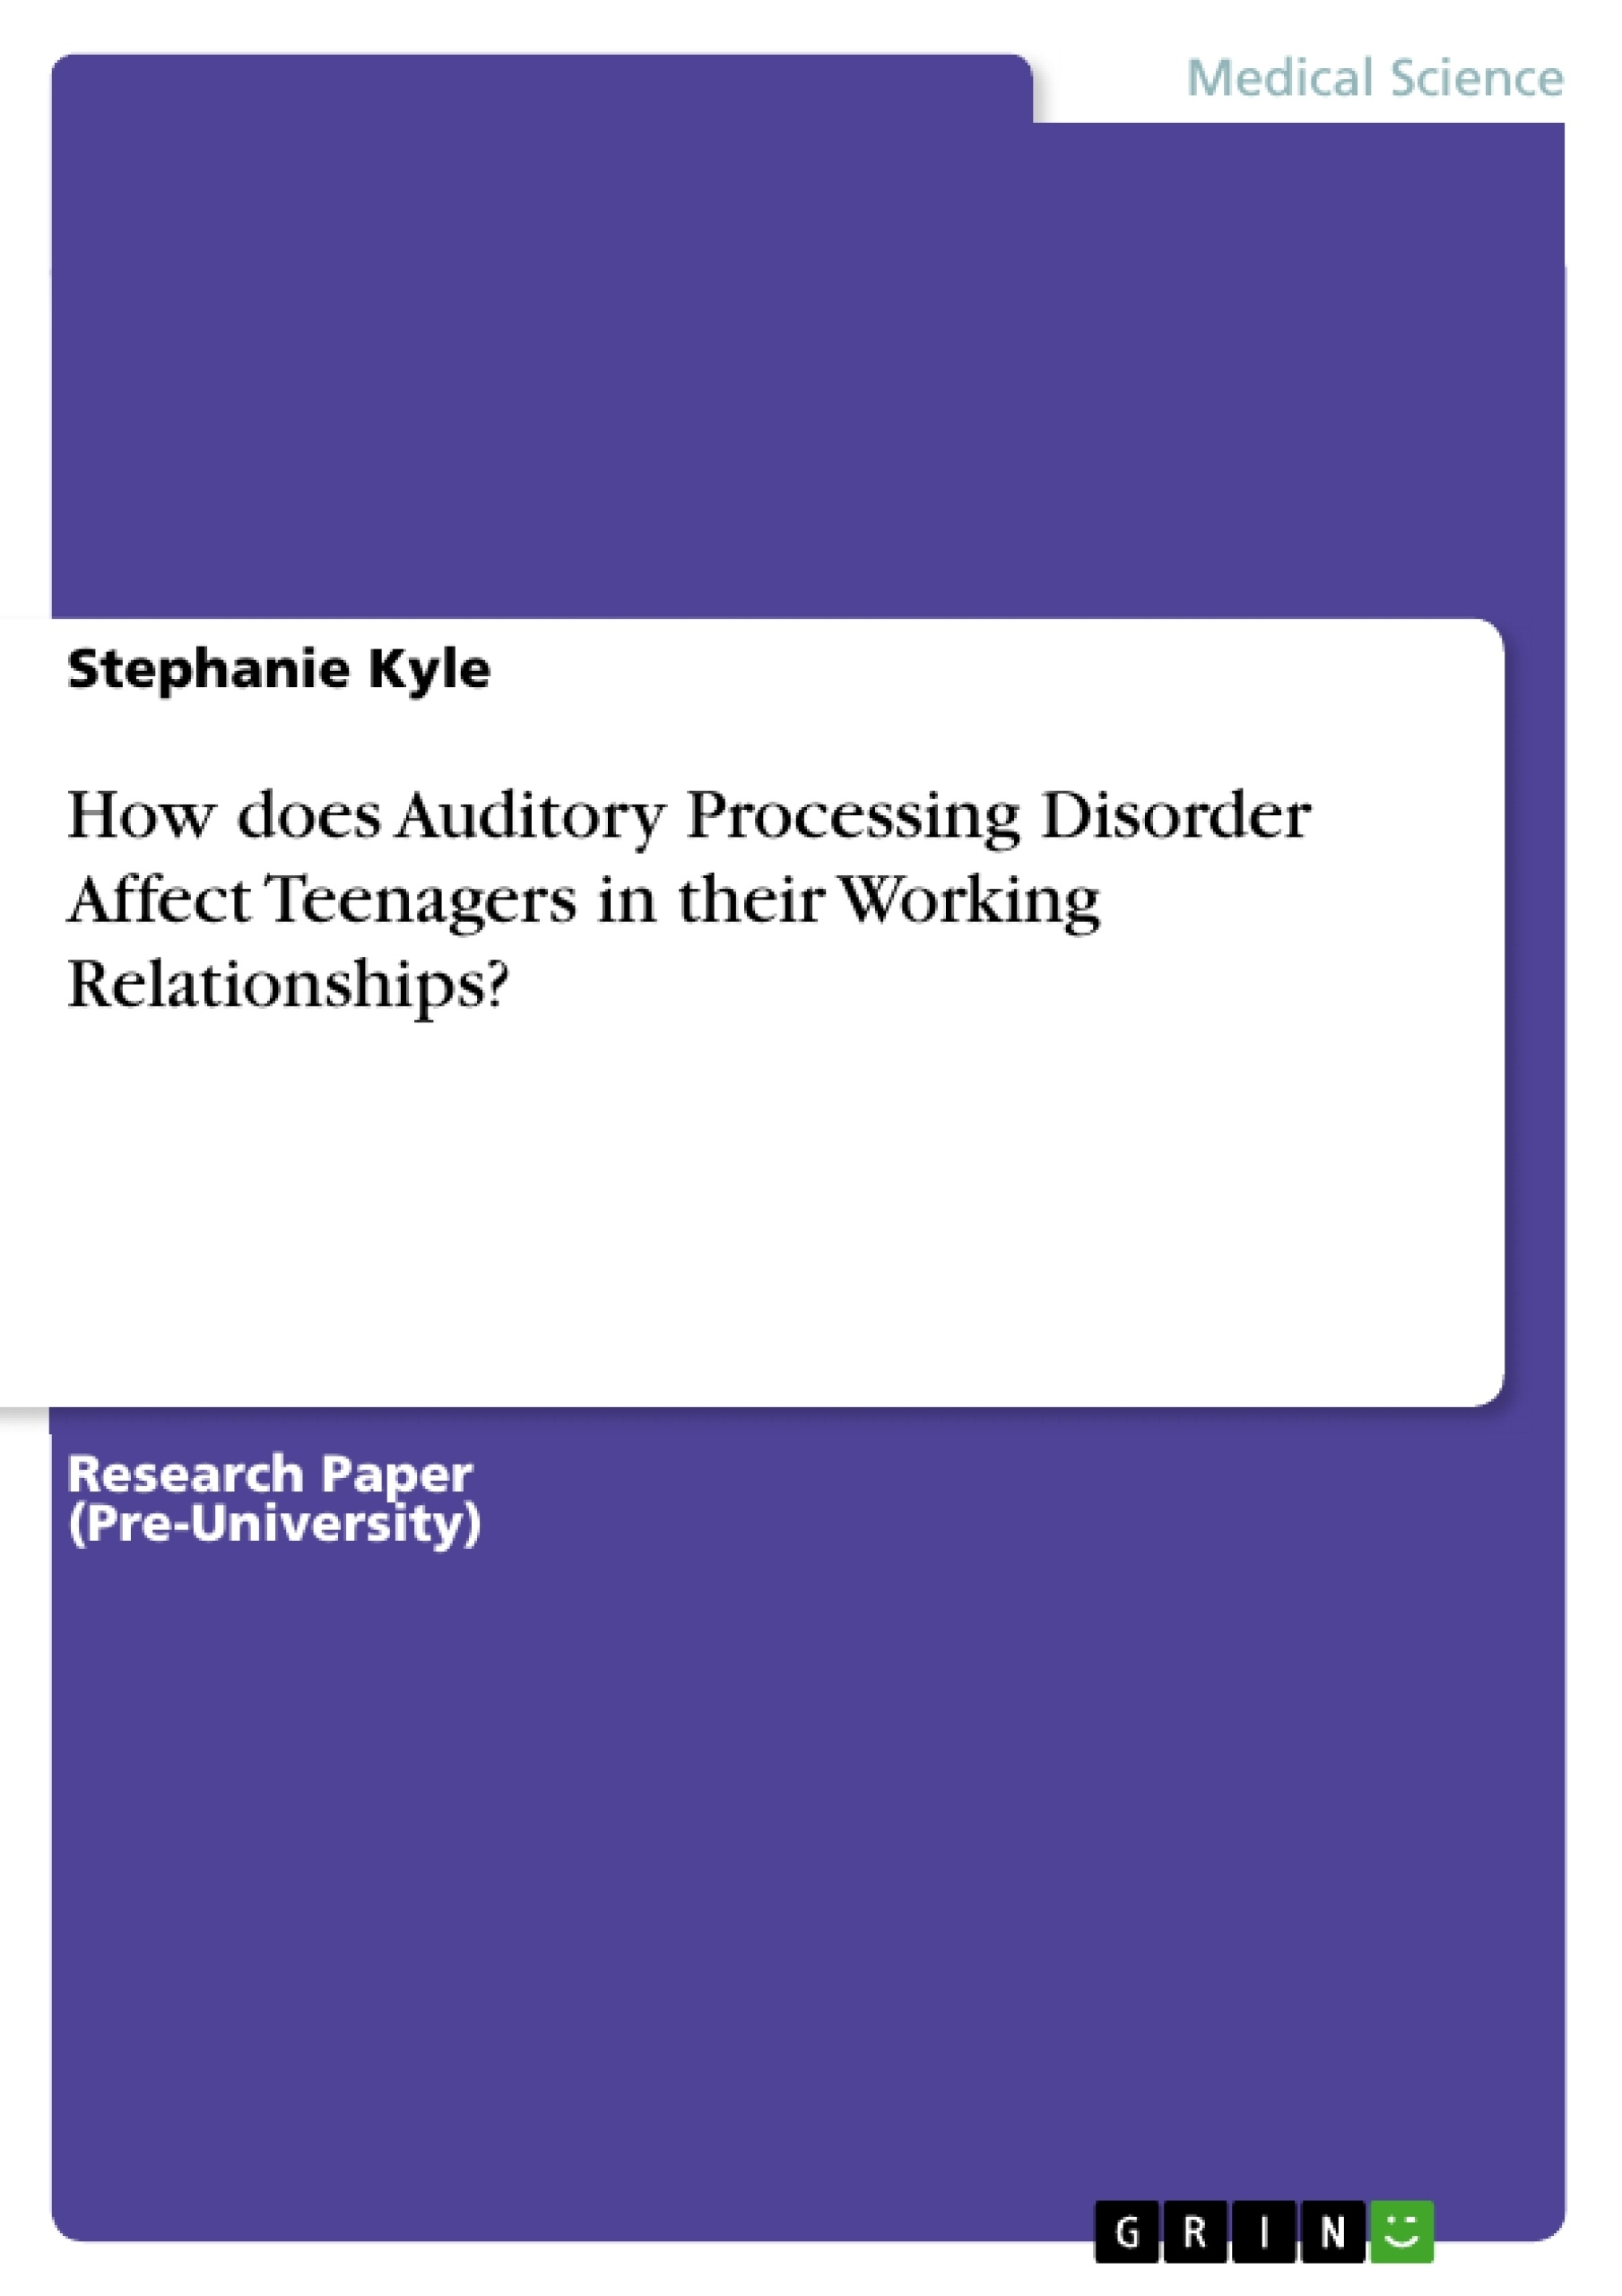 Title: How does Auditory Processing Disorder Affect Teenagers in their Working Relationships?